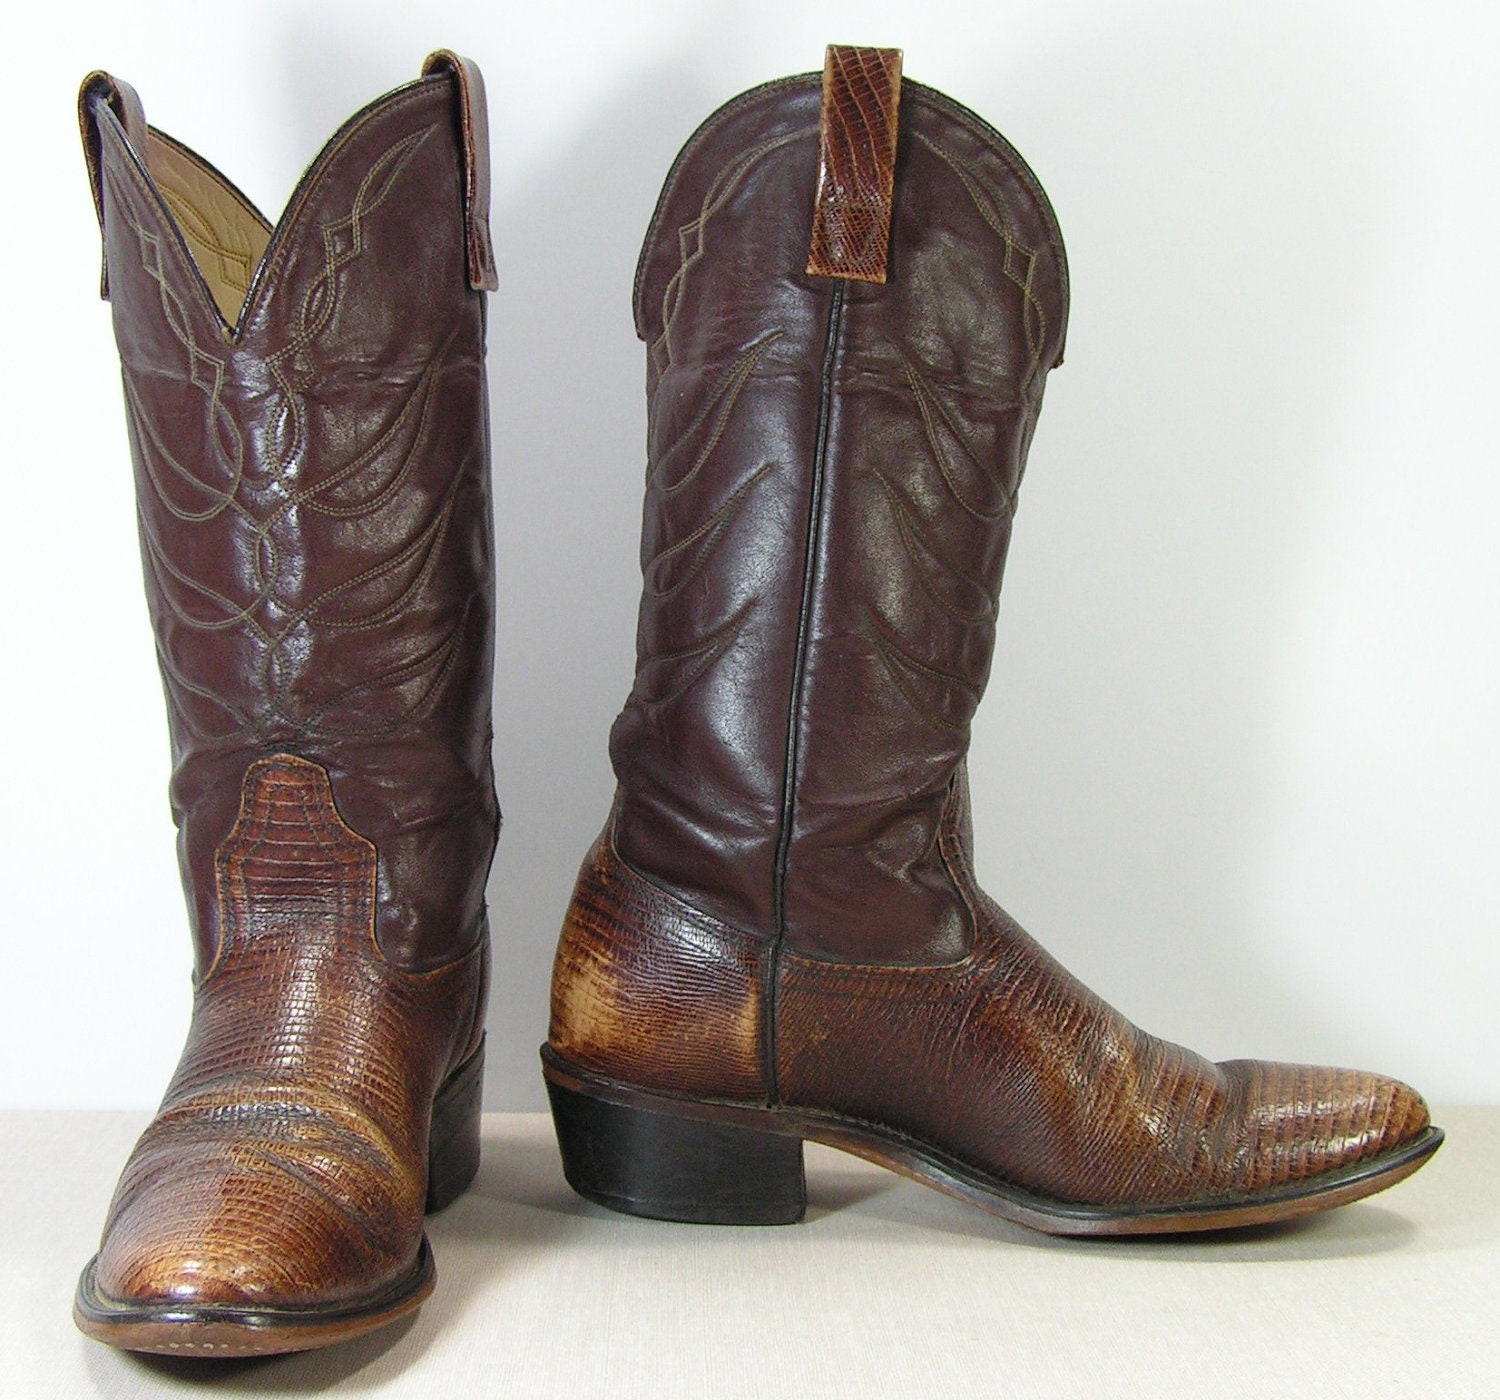 acme cowboy boots mens 9 d brown western by vintagecowboyboots